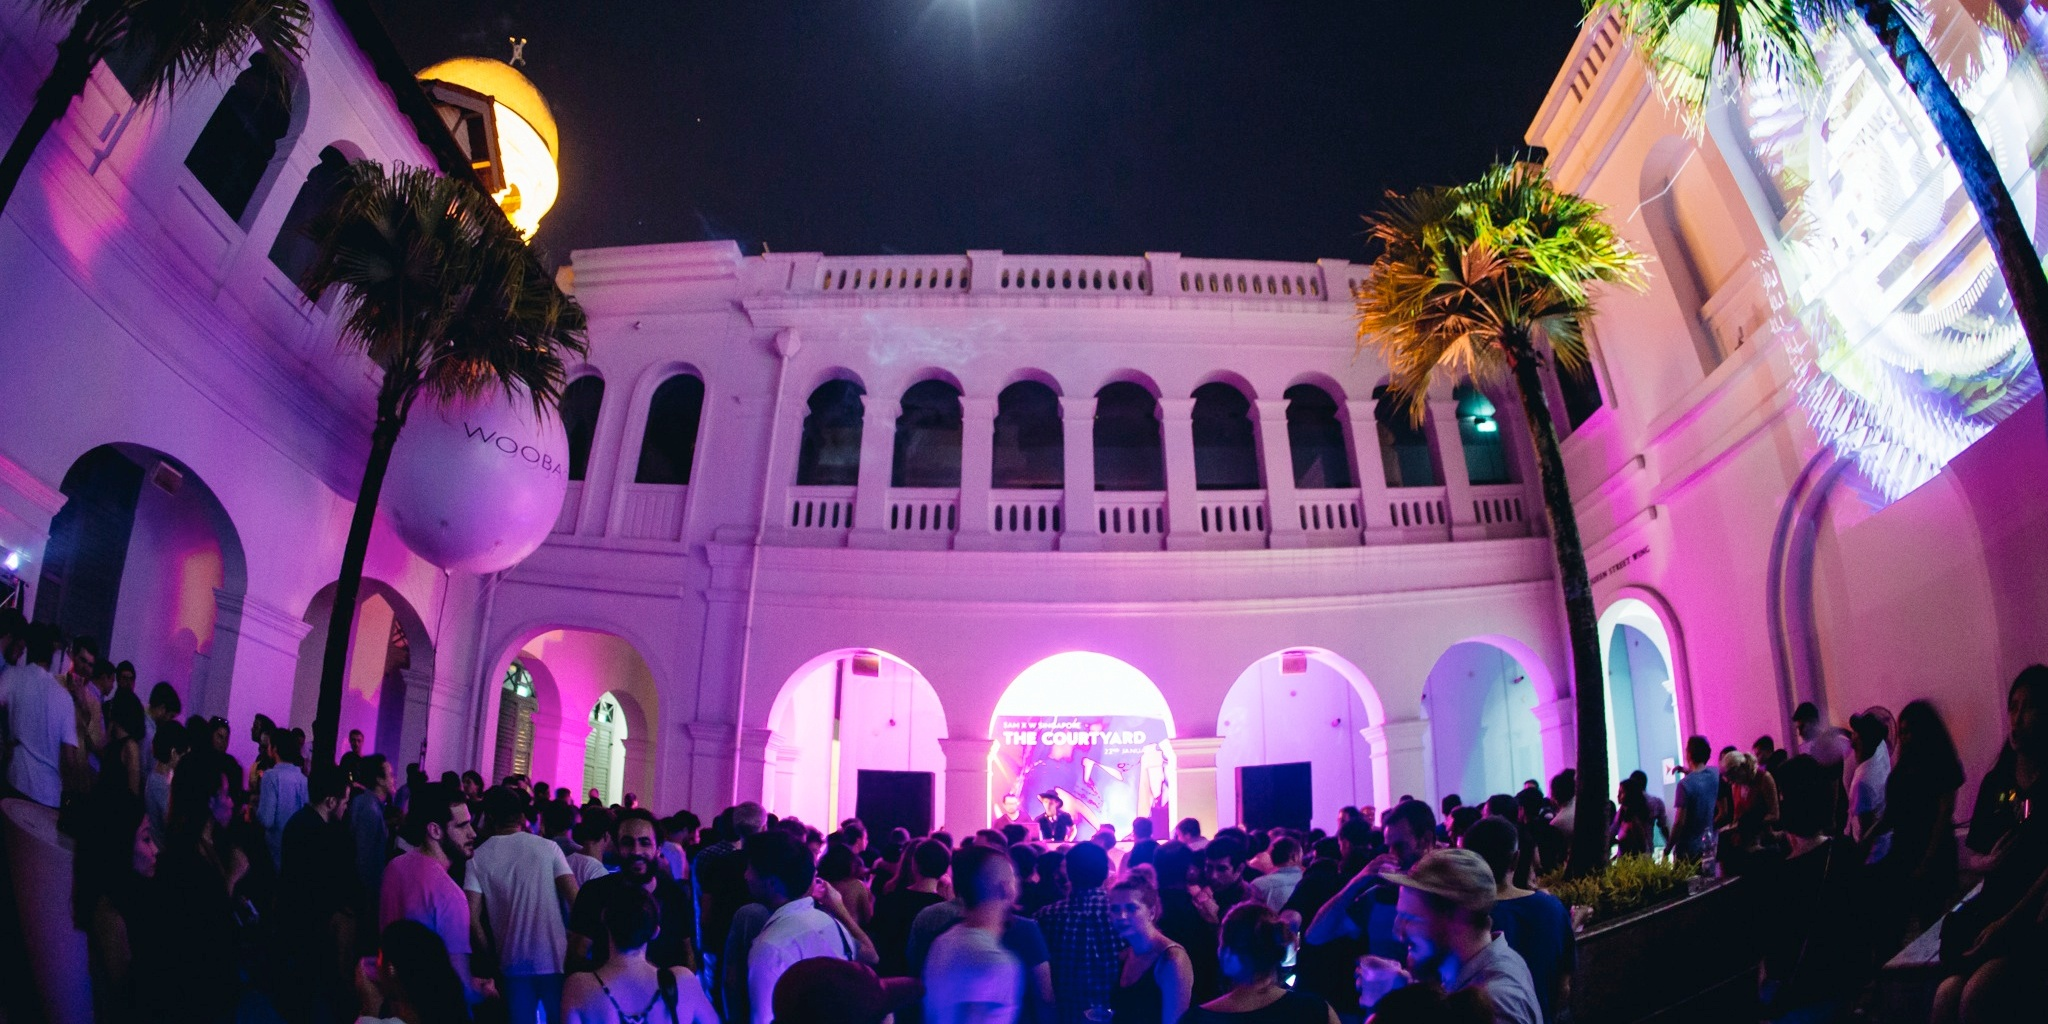 Singapore Art Museum will play host to a series of bands and DJs to close Singapore Biennale 2016